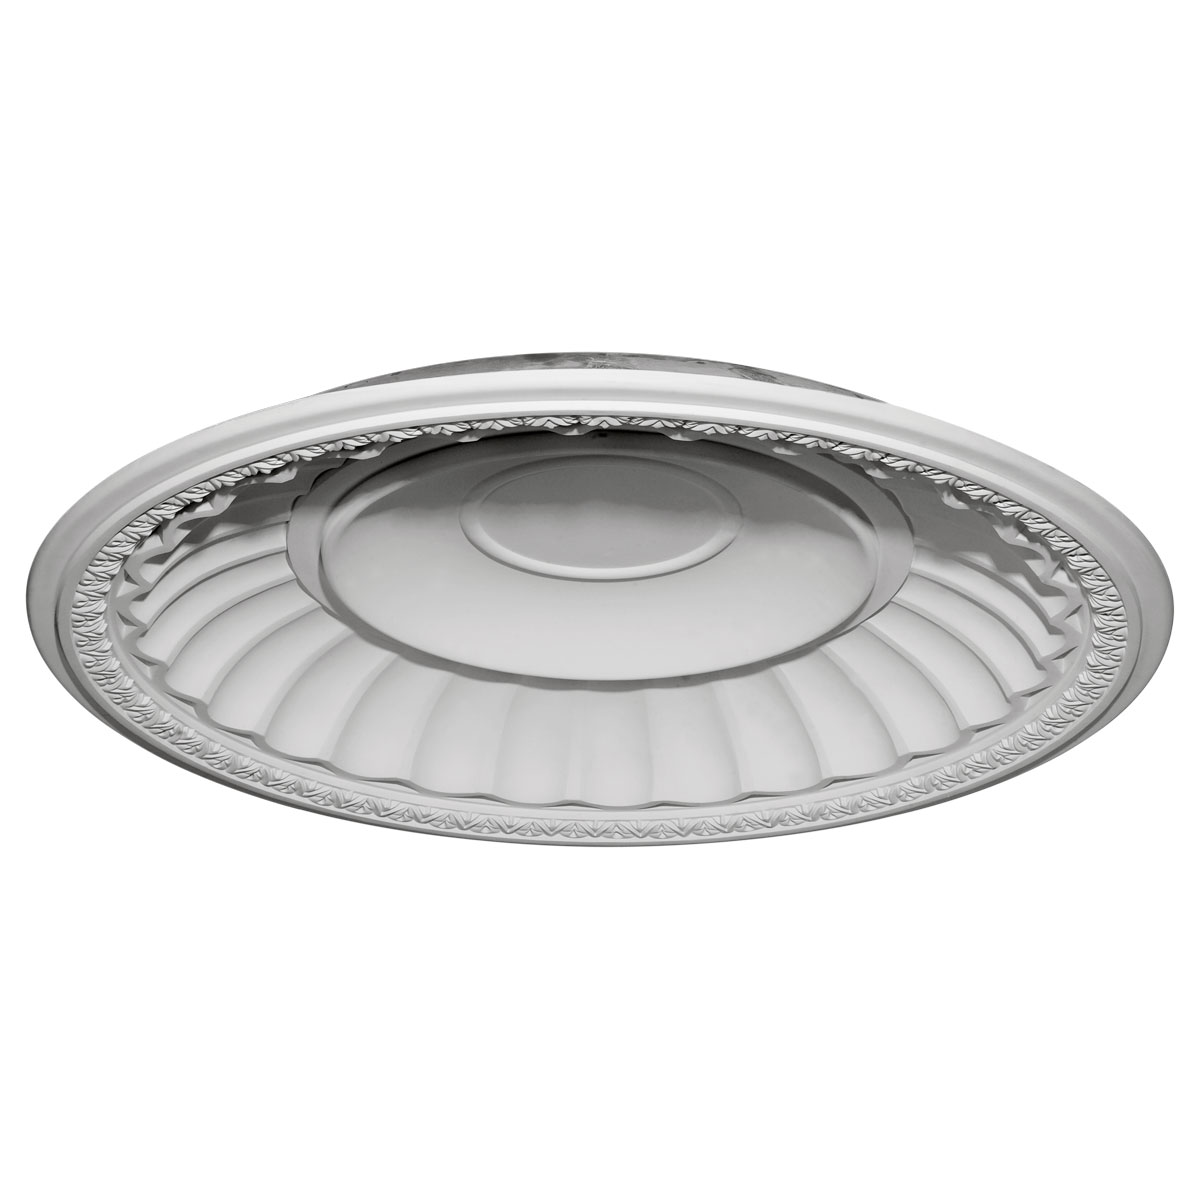 """DOME51DU 50-7/8""""OD x 43-1/2""""ID x 6-3/8""""D Dublin Recessed Mount Ceiling Dome (49""""Diameter x 7""""D Rough Opening)"""